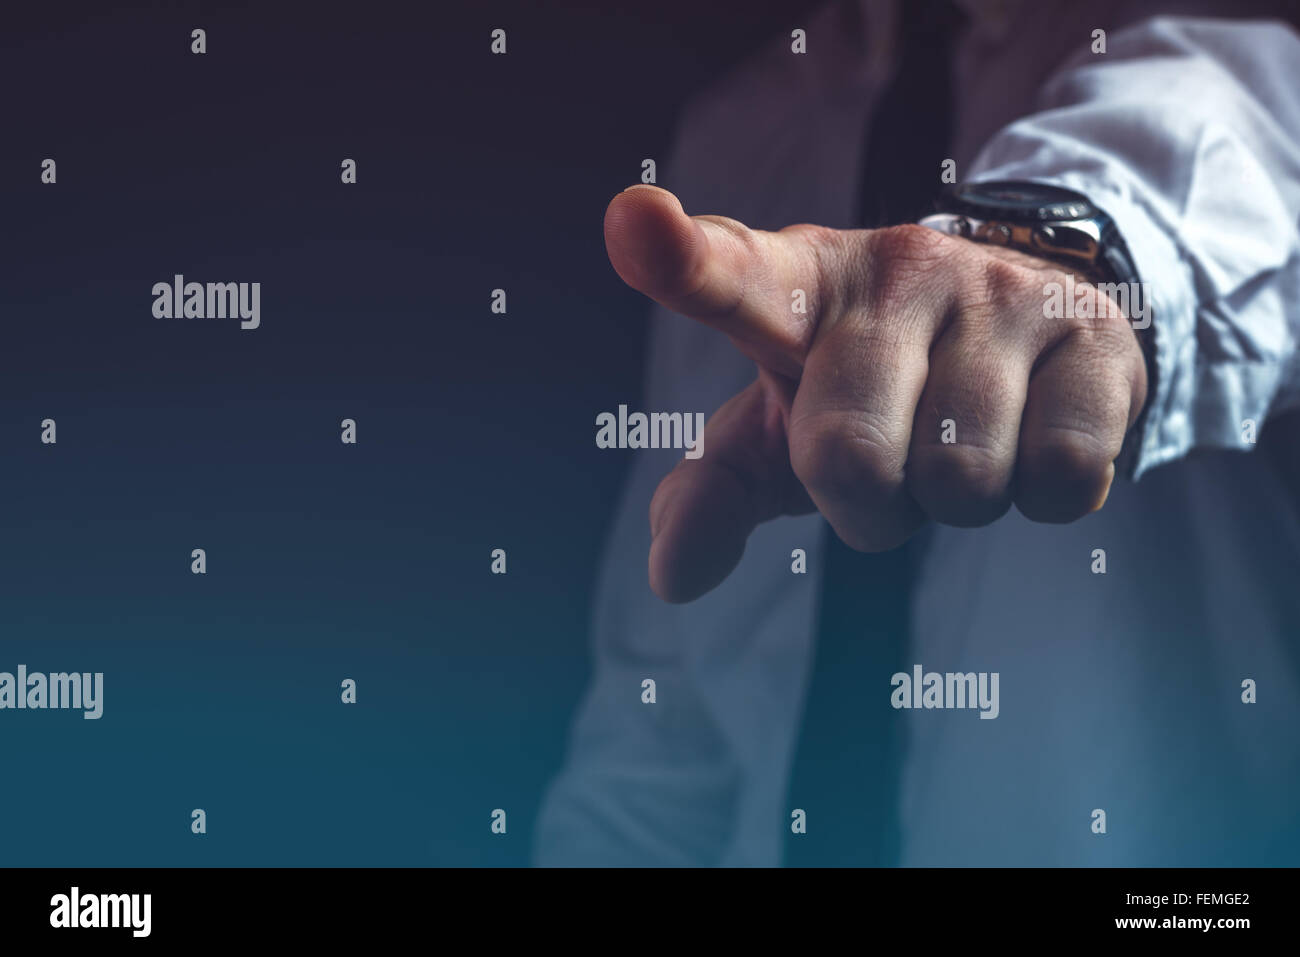 You are fired concept, boss gesturing way out hand sign with index finger Stock Photo